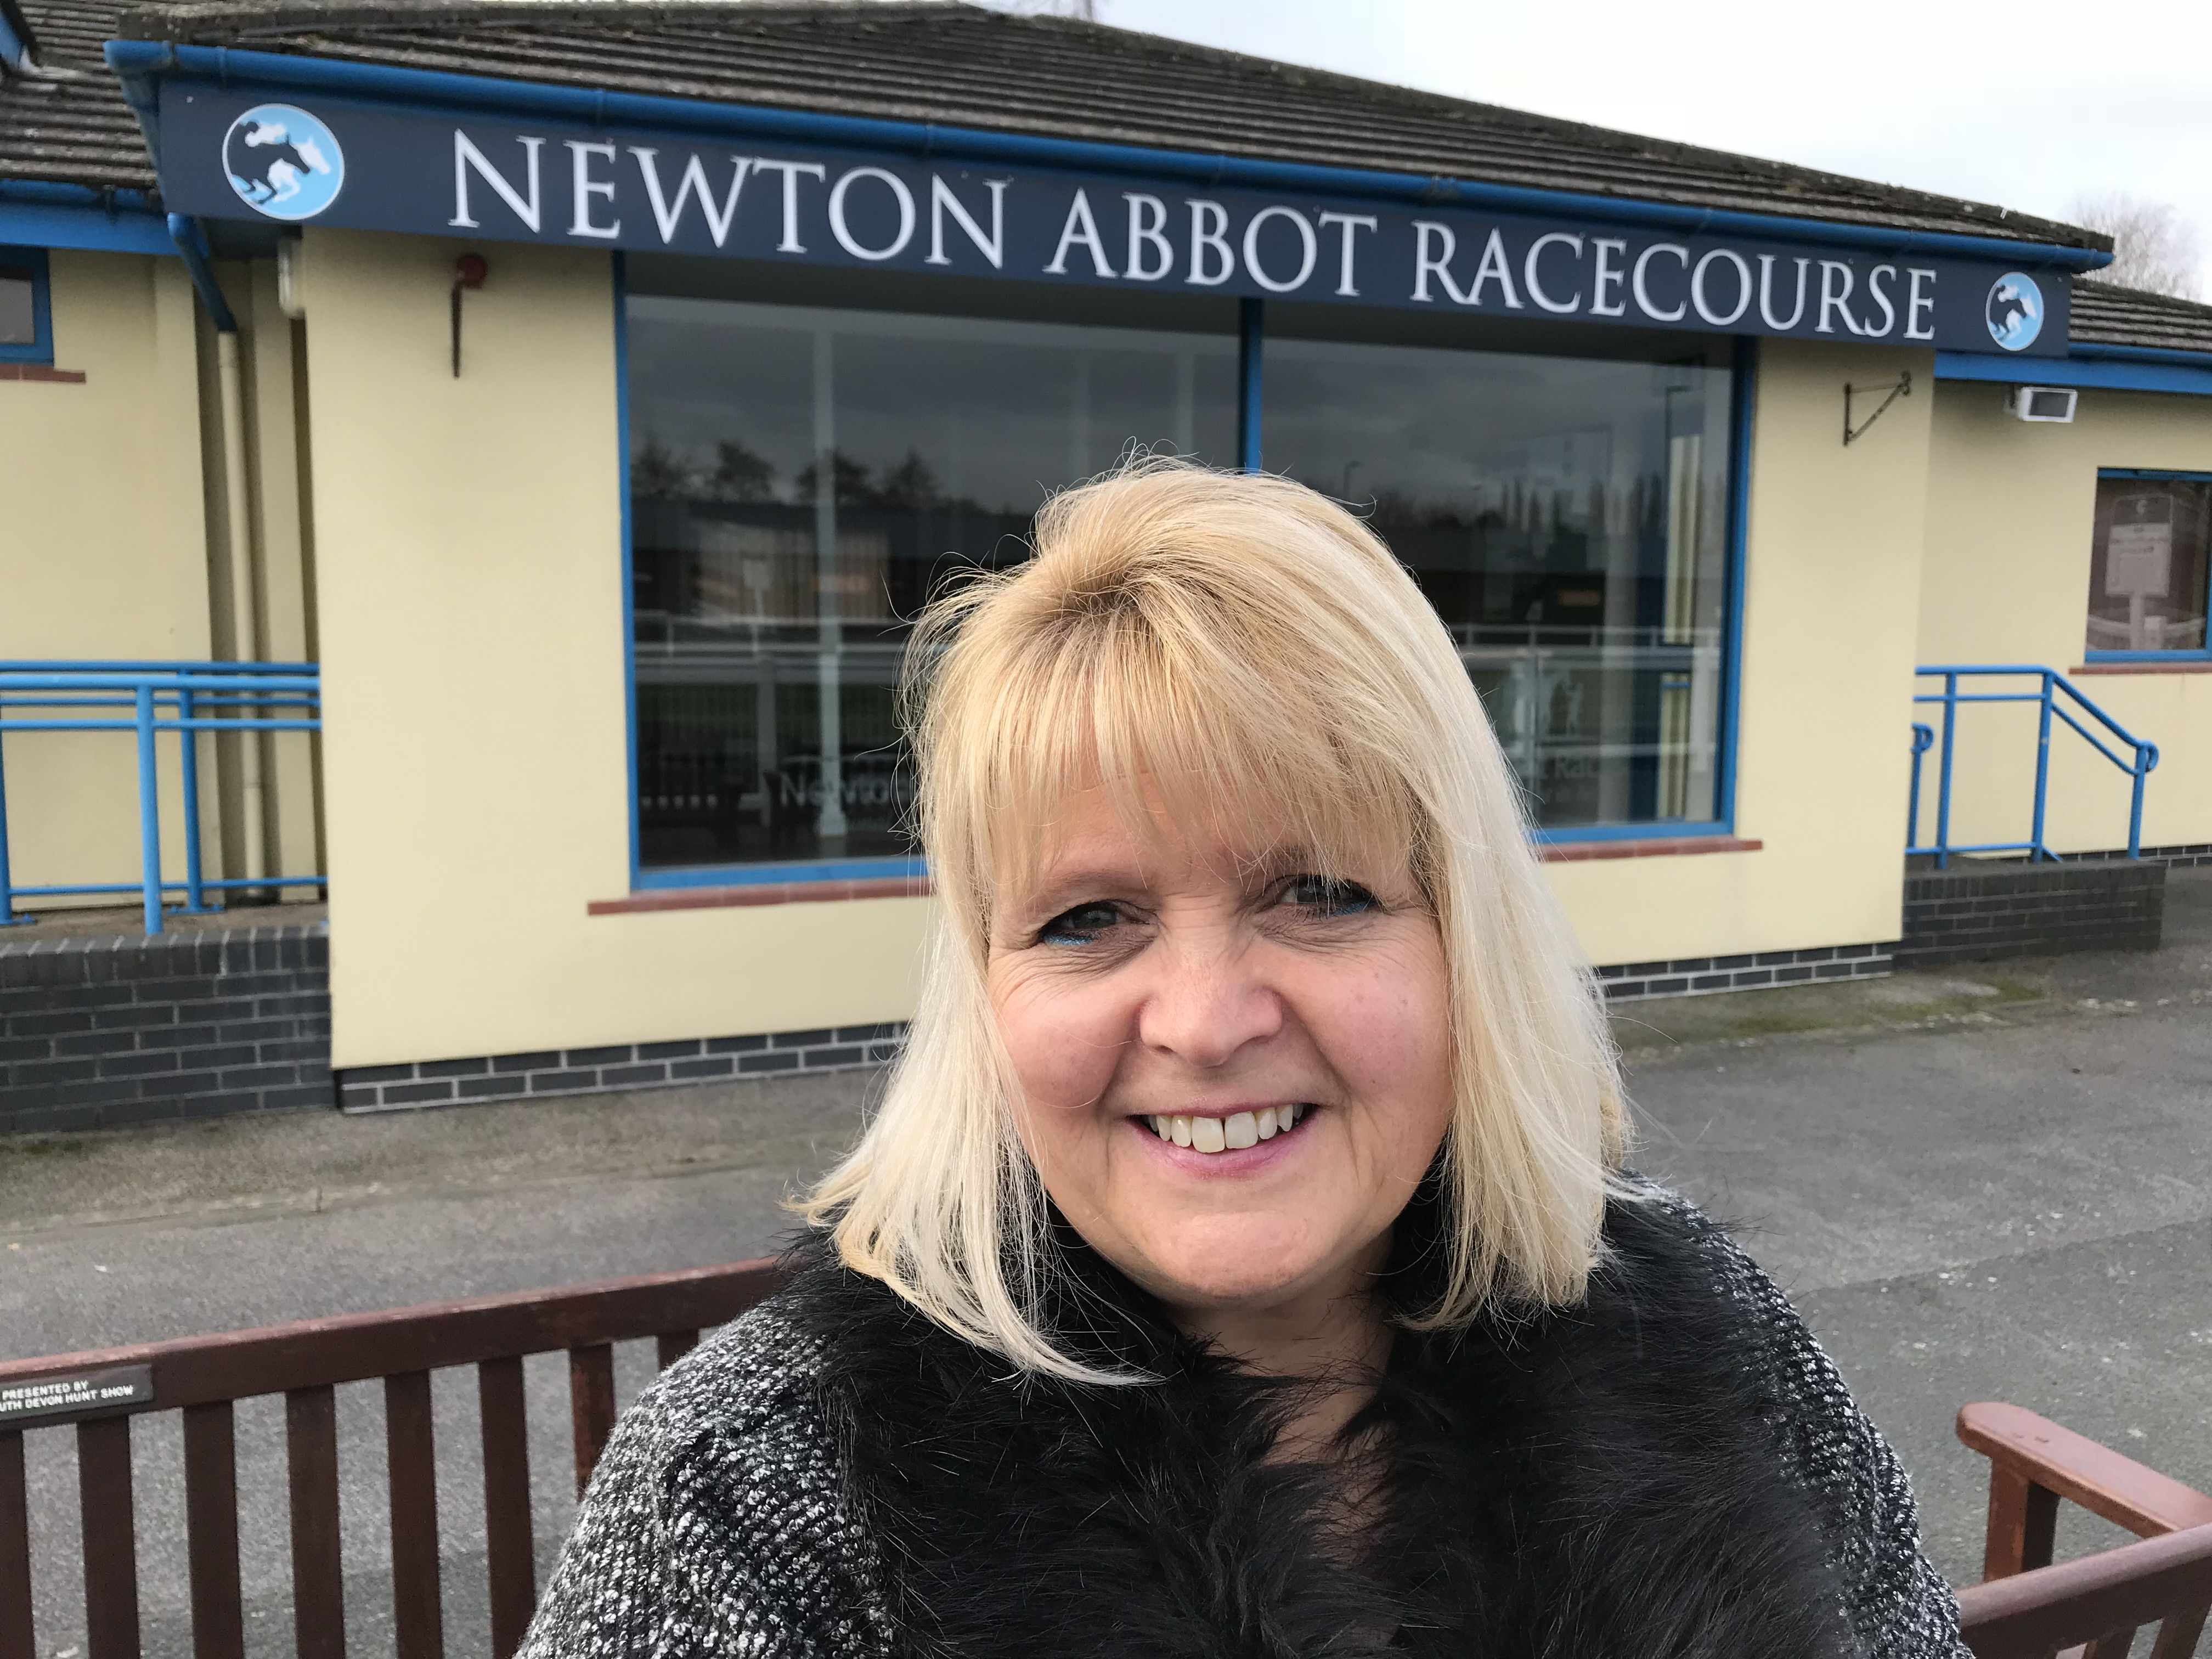 Jenny Paton - Newton Abbot Racecourse Business Development Manager